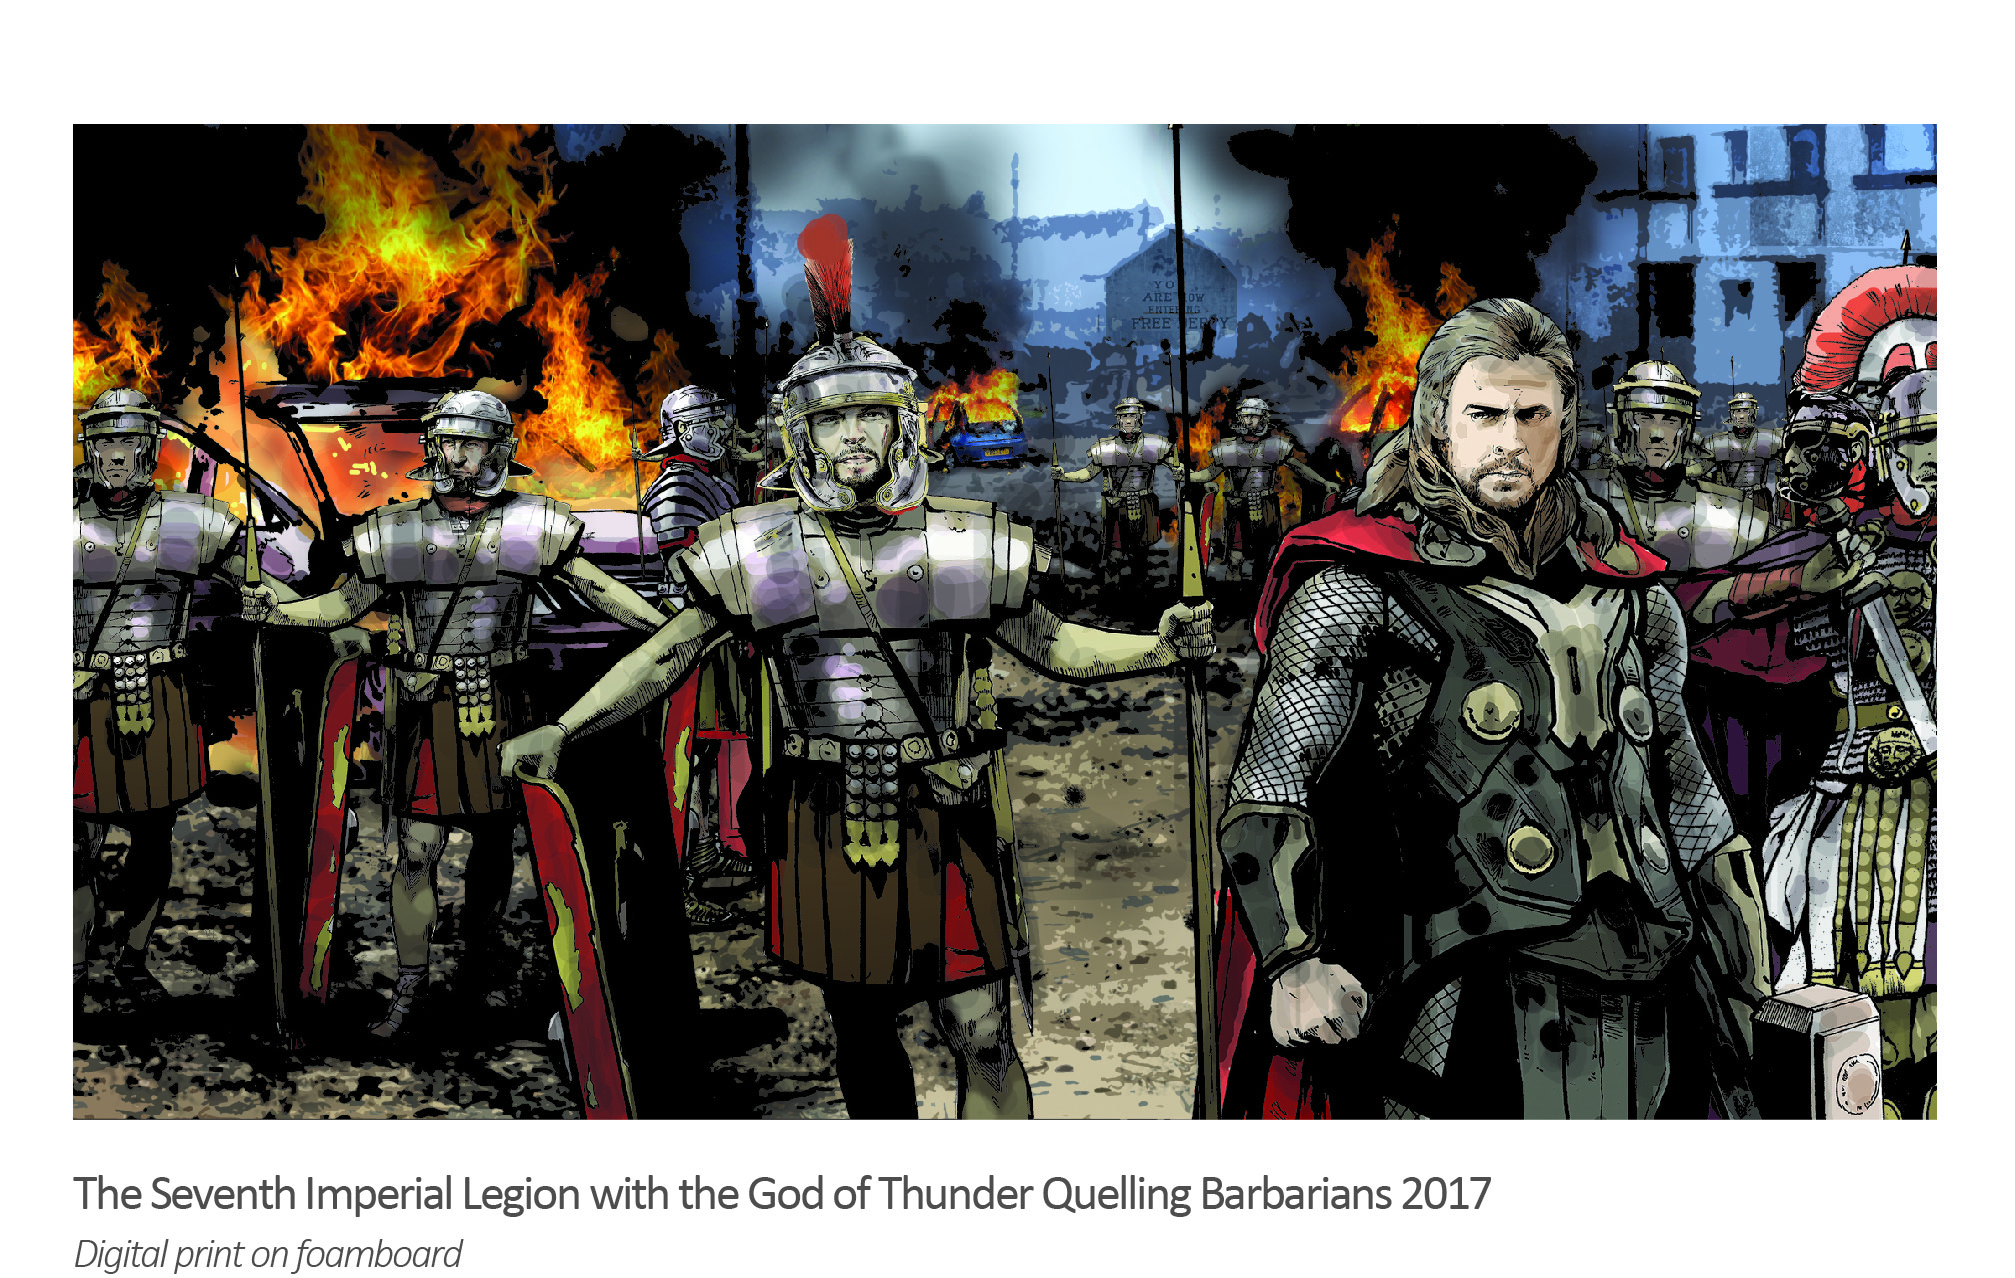 The Seventh Legion with Thor Quelling Barbarians